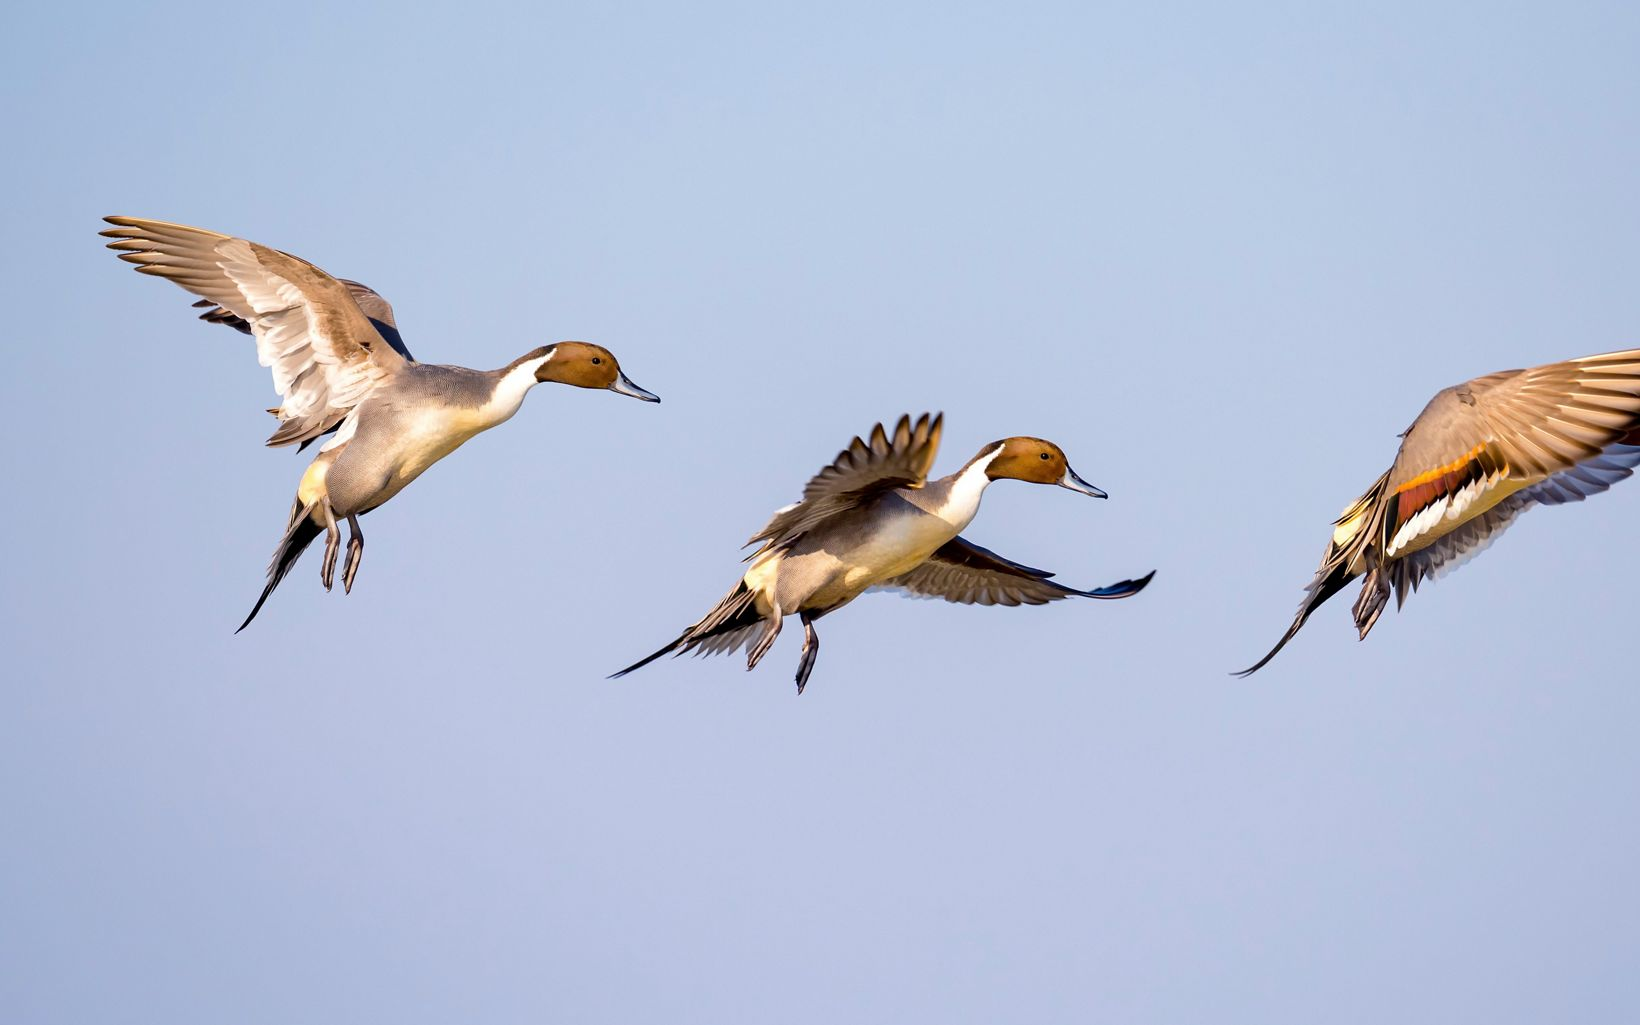 Three northern pintails are flying.